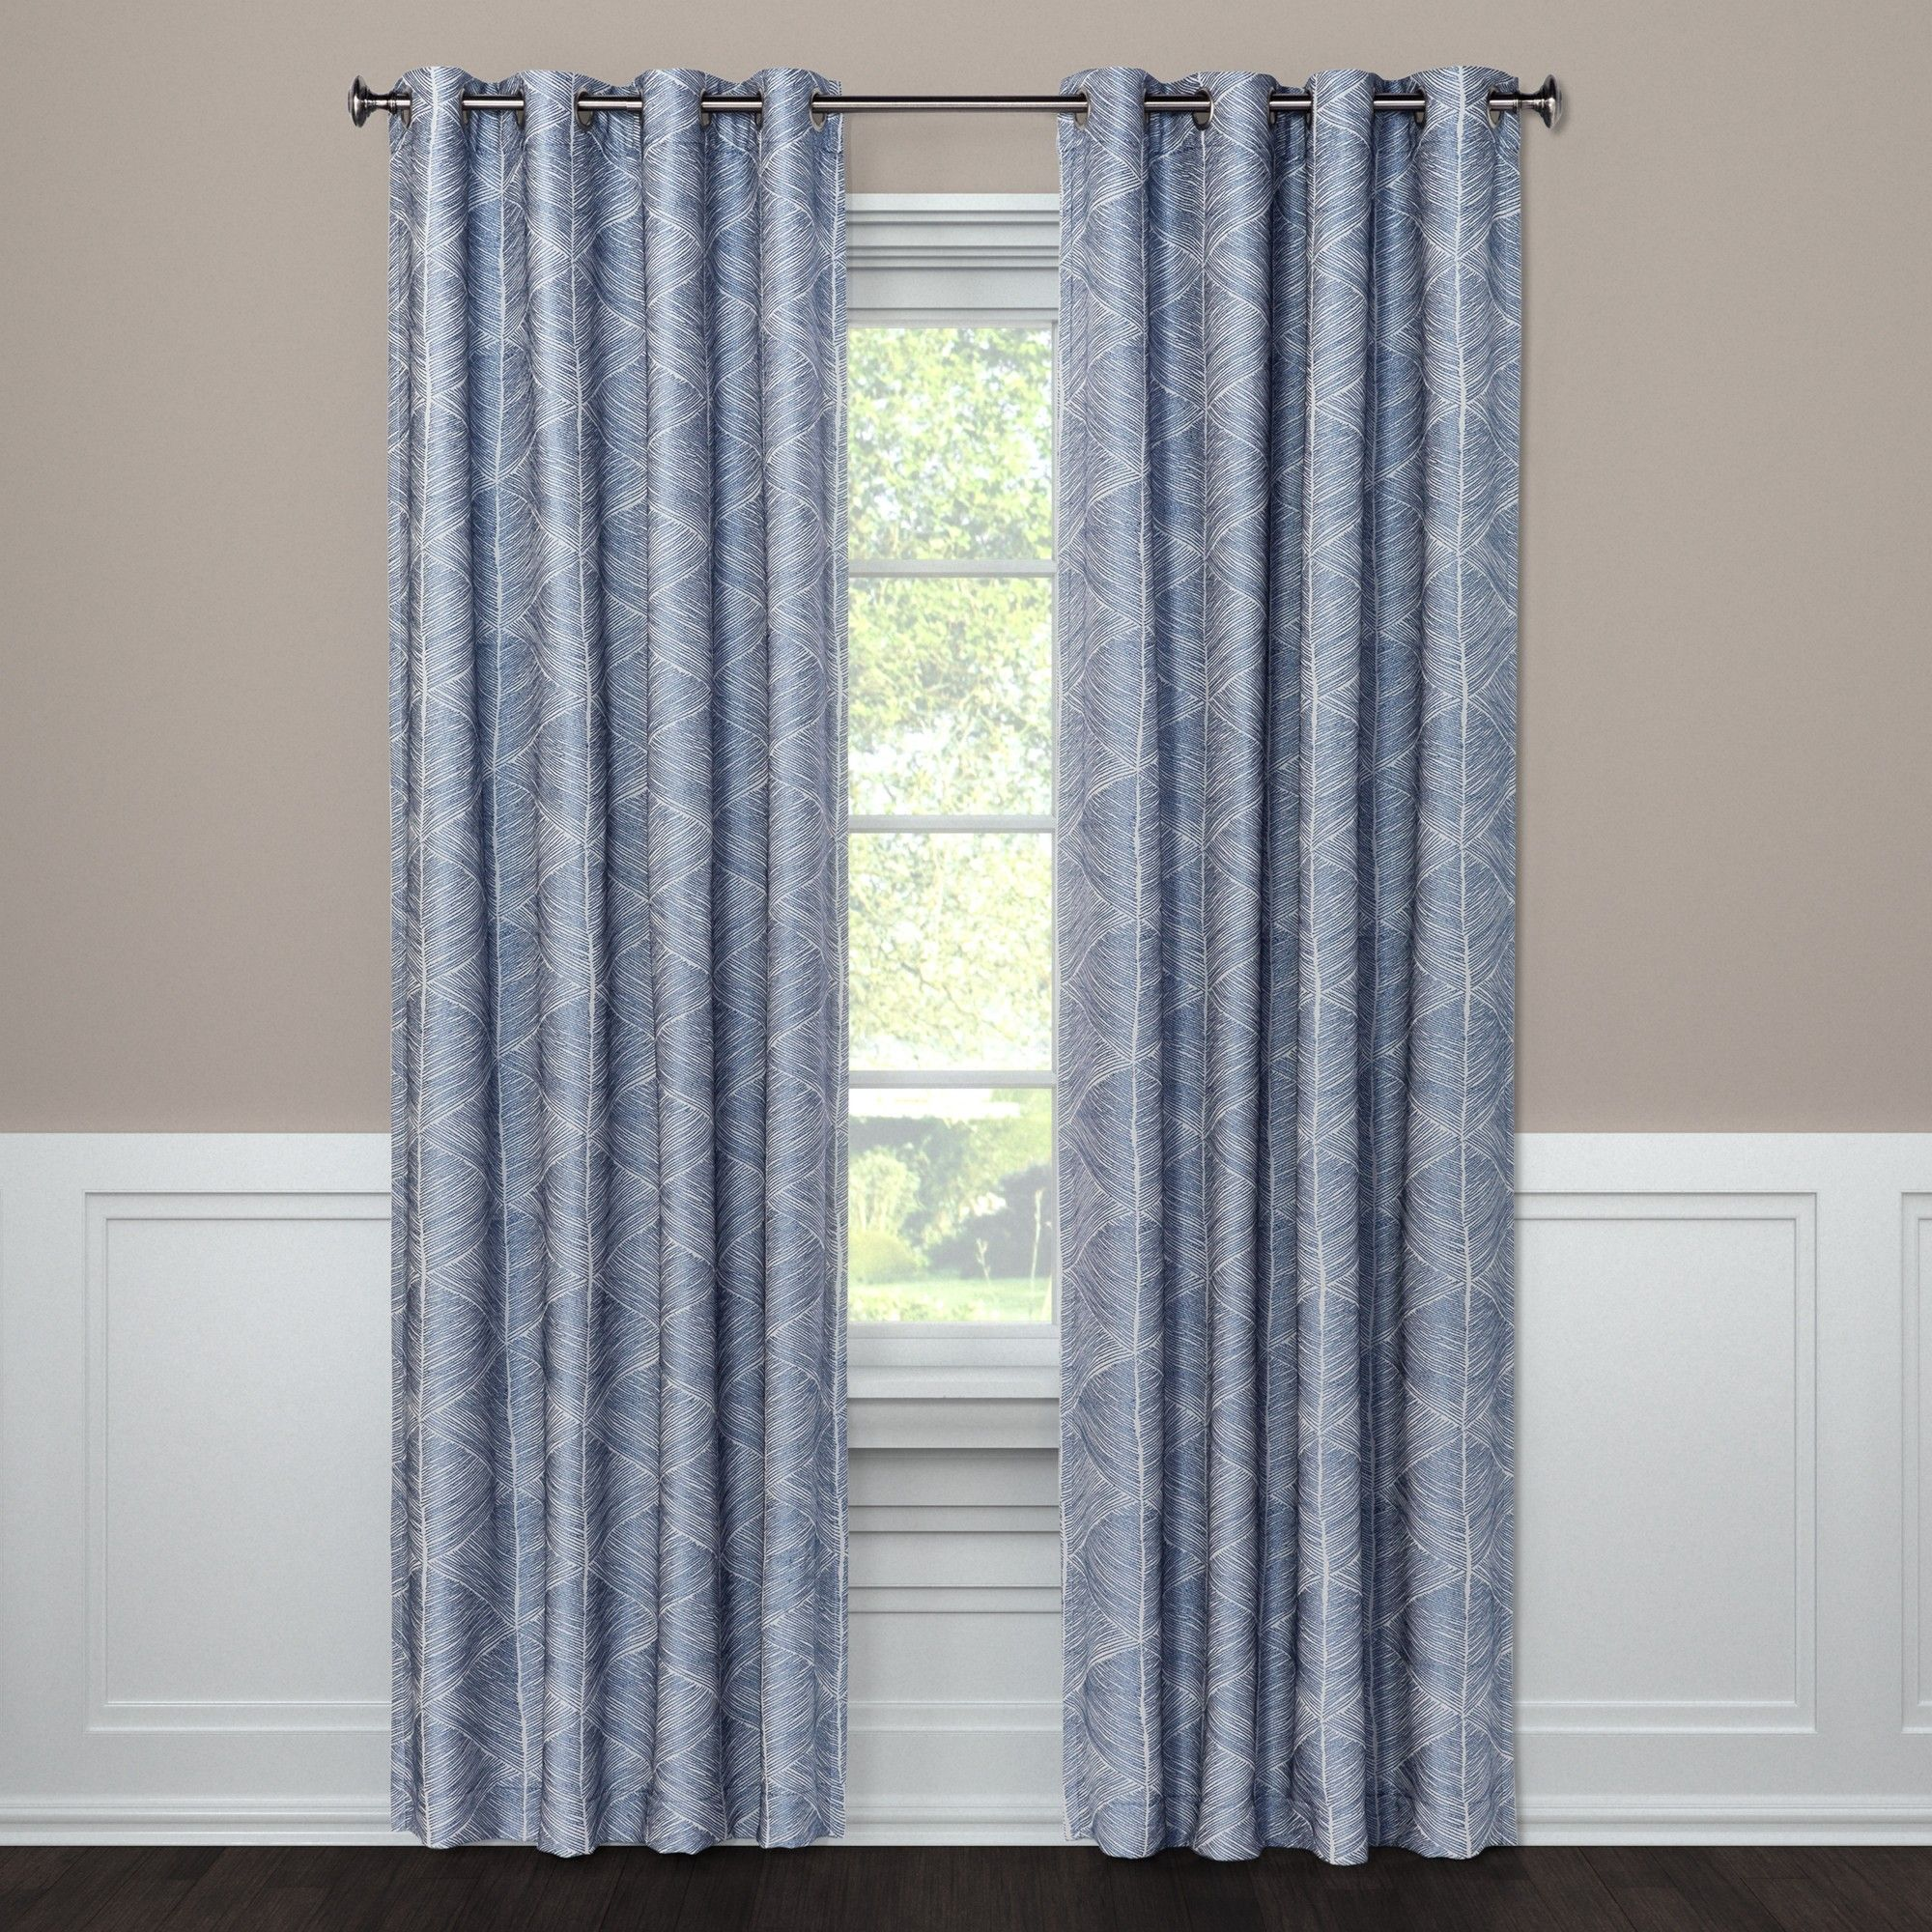 Blackout Curtain Panel Modern Stroke Blue 108 Project 62